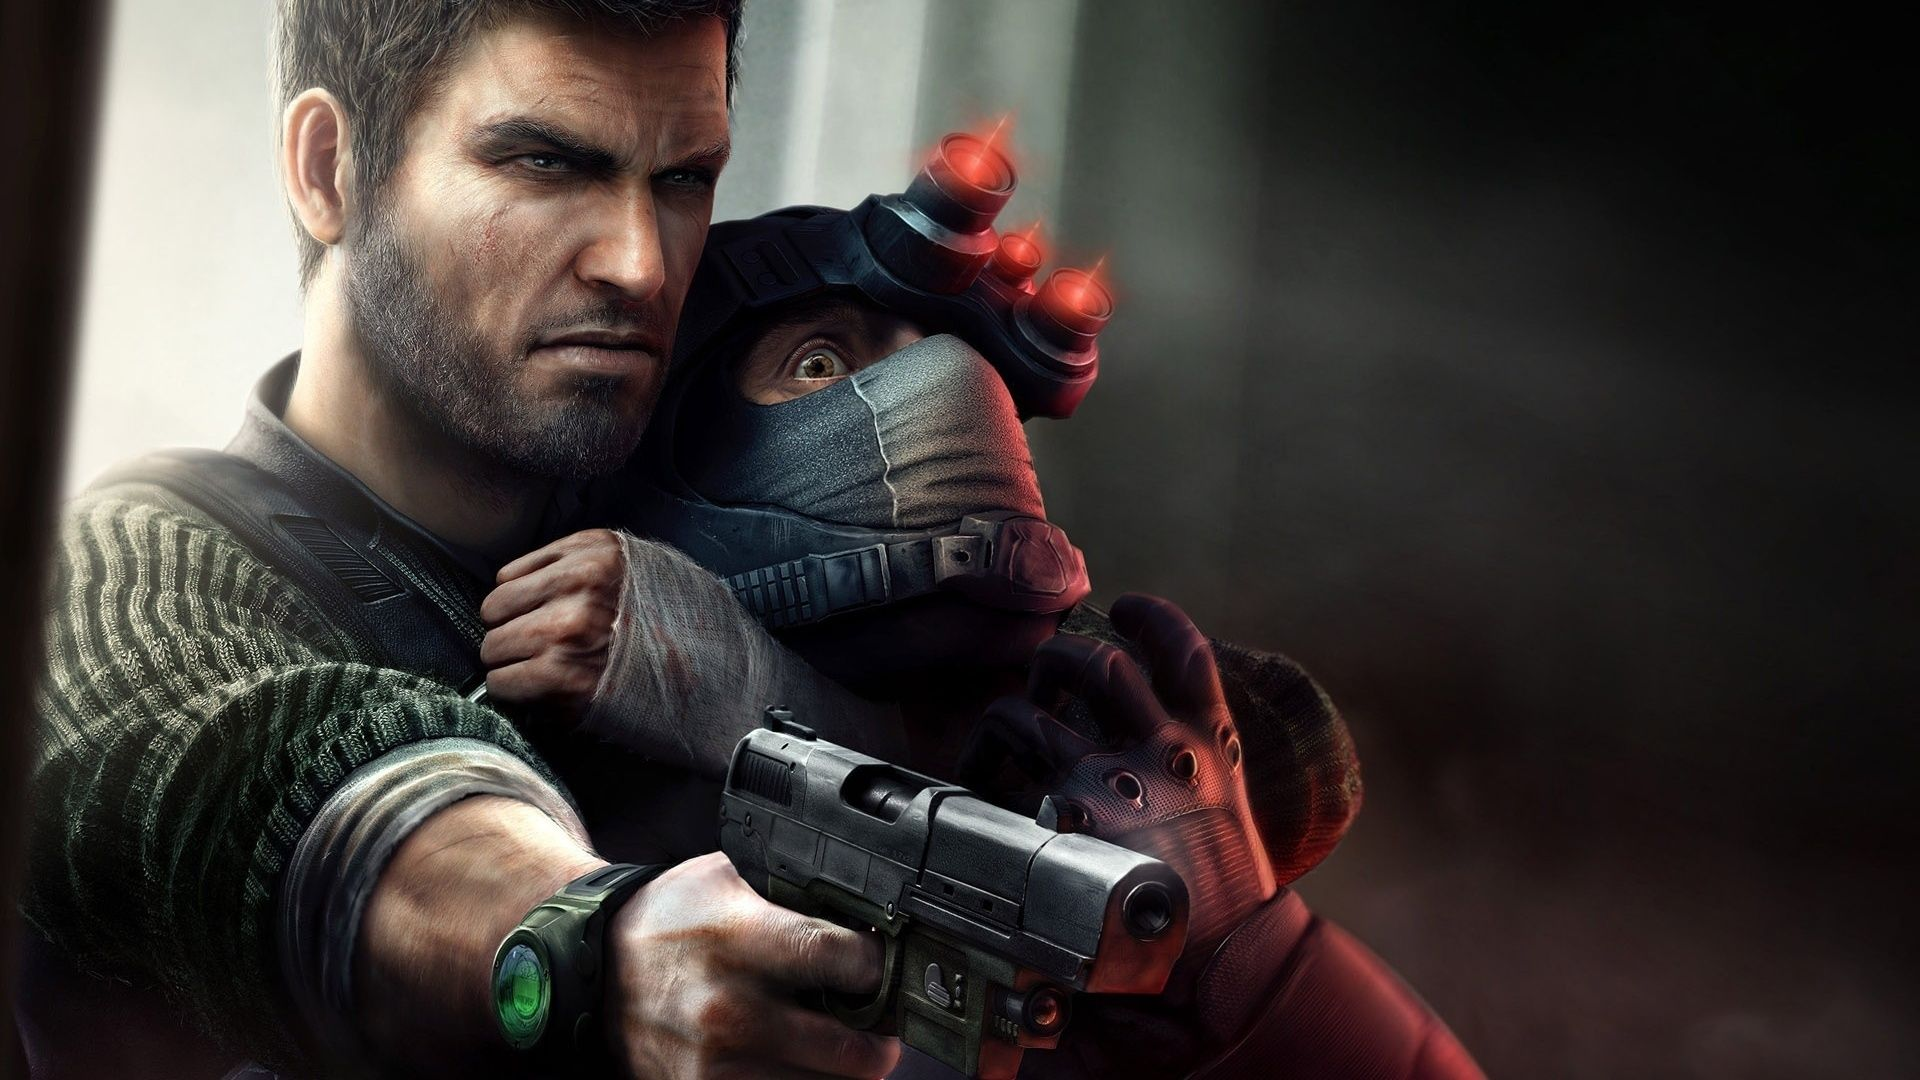 Splinter Cell: Conviction Free Download | Tom clancys